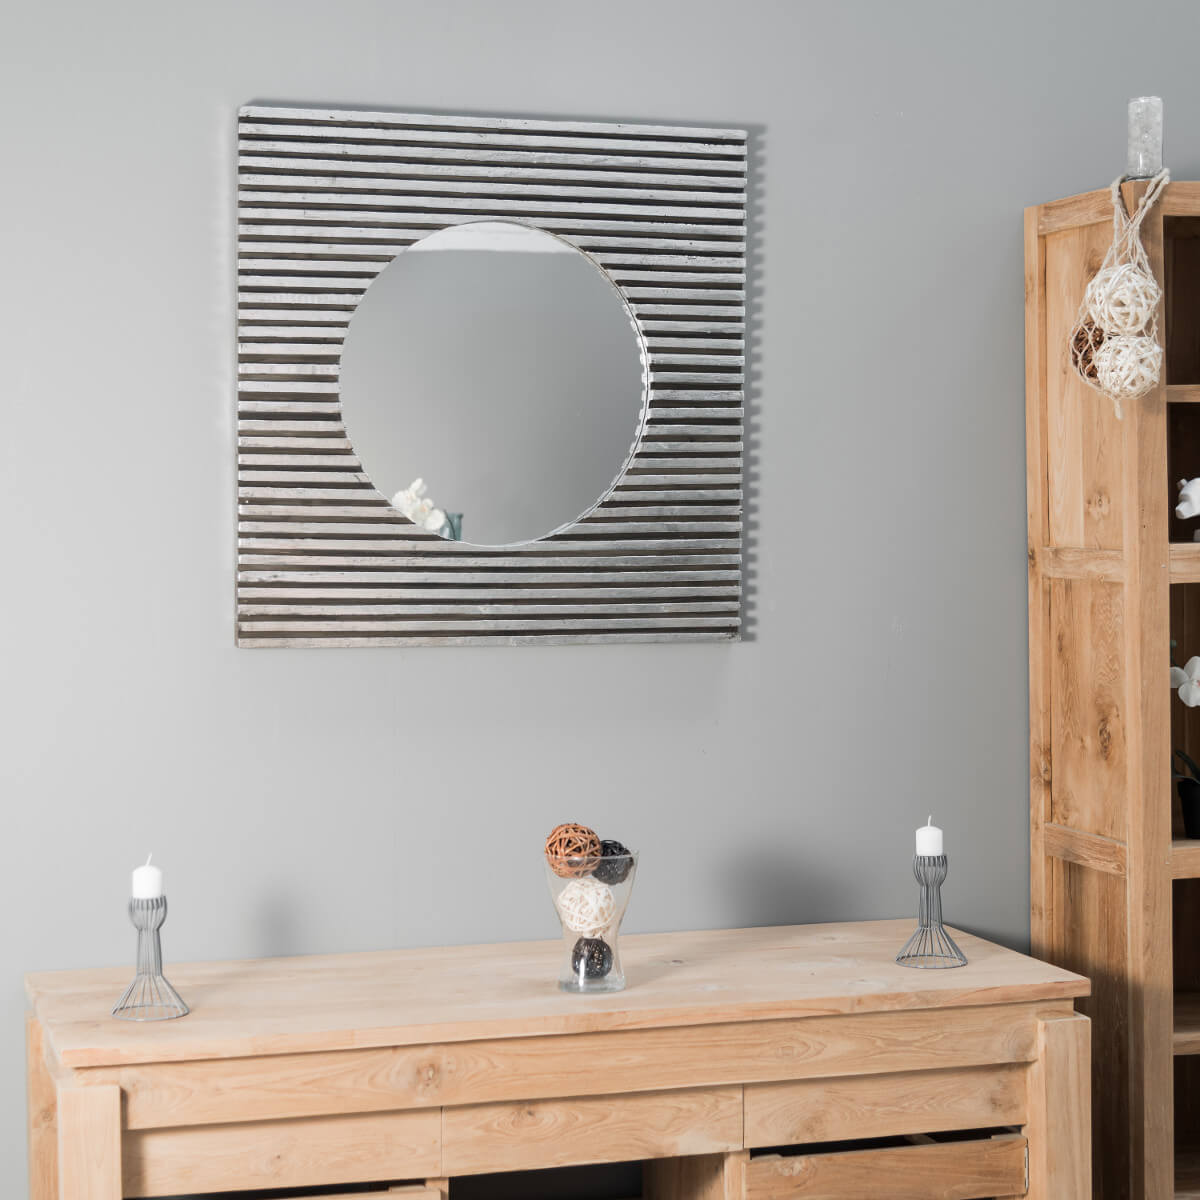 Miroir de d coration en bois massif art d co carr for Decoration petit salon carre